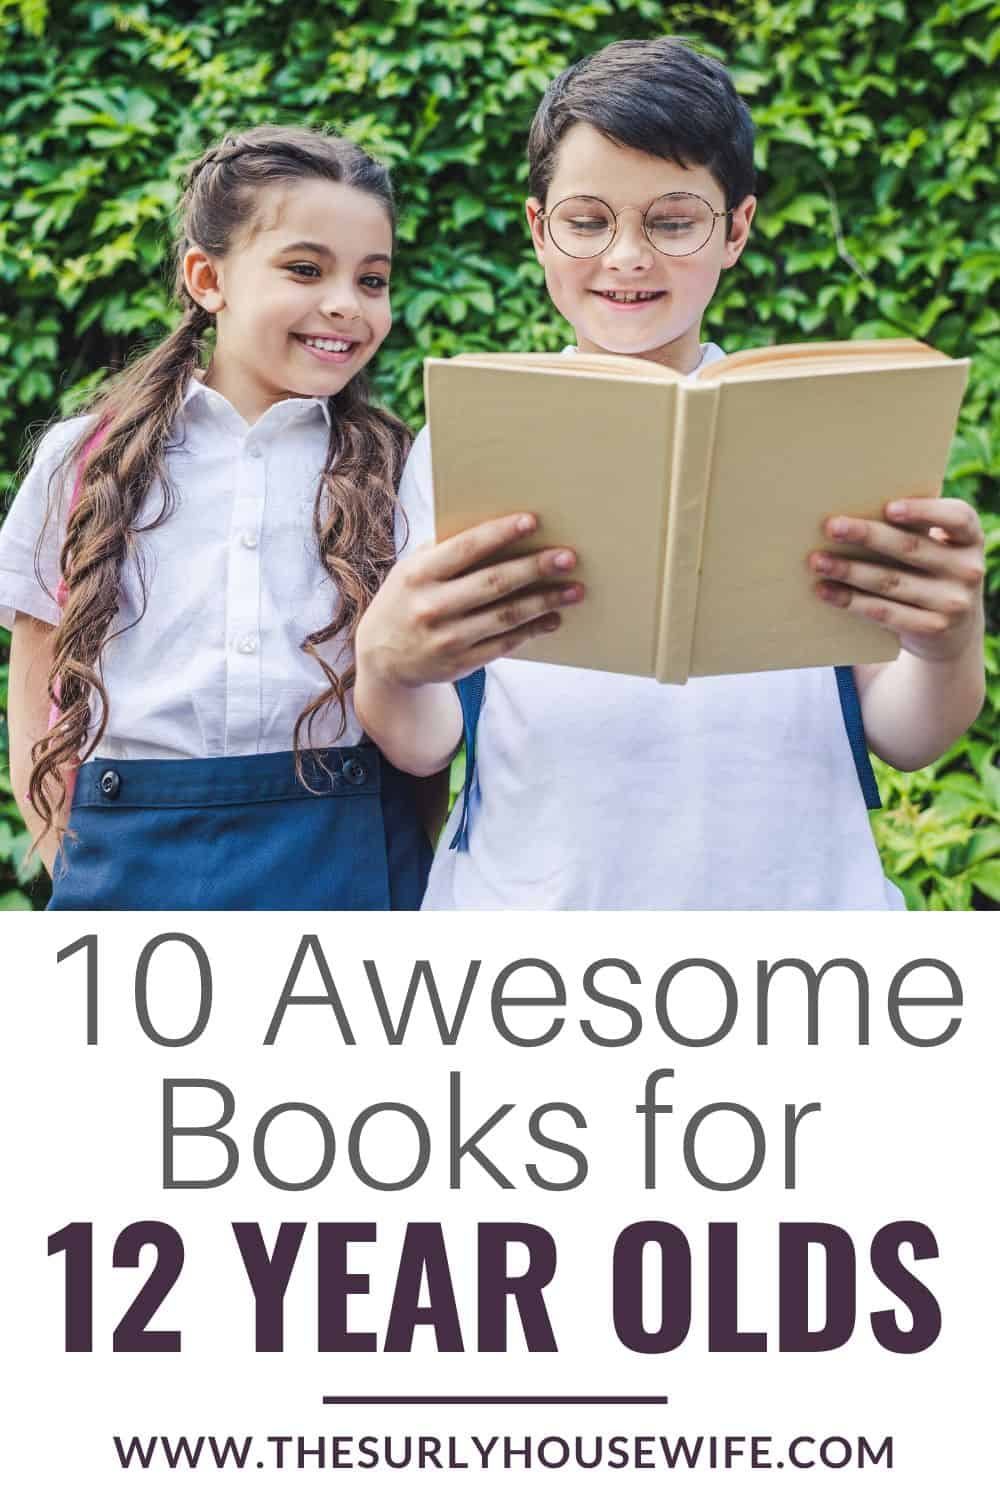 Searching for the perfect book for an 12 year old? This post has a list of 10 books for 12 year olds! It contains page-turning titles for boys OR girls. Encourage your young reader with 10 eclectic book recommendations. Don't miss this list which contains some of the best books for 12 year olds. They include chapter books, fantasy, classics, realistic fiction, and historical fiction. They are perfect for reading aloud, independent reading, or a summer reading list!